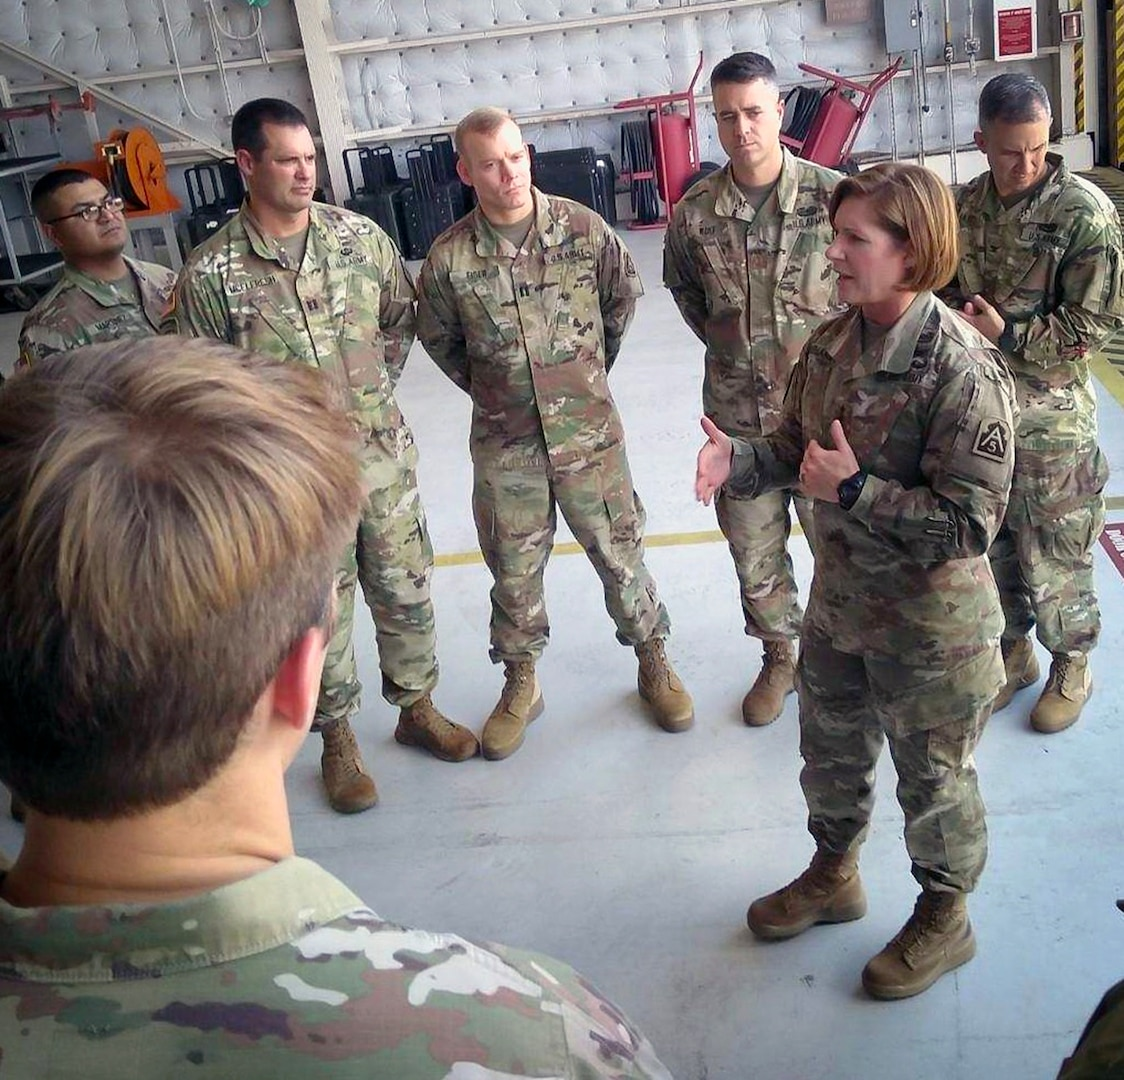 Lt. Gen. Laura Richardson, commander, U.S. Army North, talks to Soldiers during her visit with states leaders impacted by Hurricane Dorian at Homestead Air Reserve Base, Florida, Sept. 6. Army North helps protect the nation by coordinating active duty military support to state and federal partners during disasters.